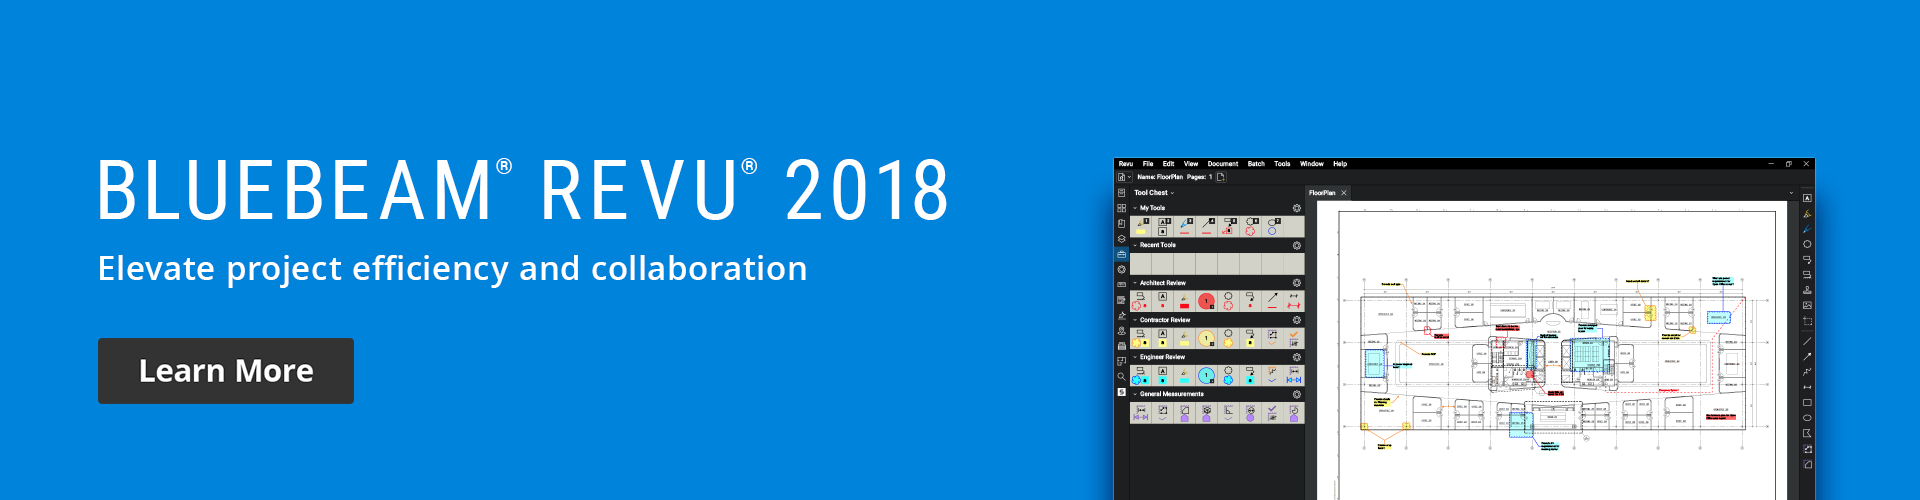 Bluebeam Revu 2018 Web Banner 1920x500_US_v2